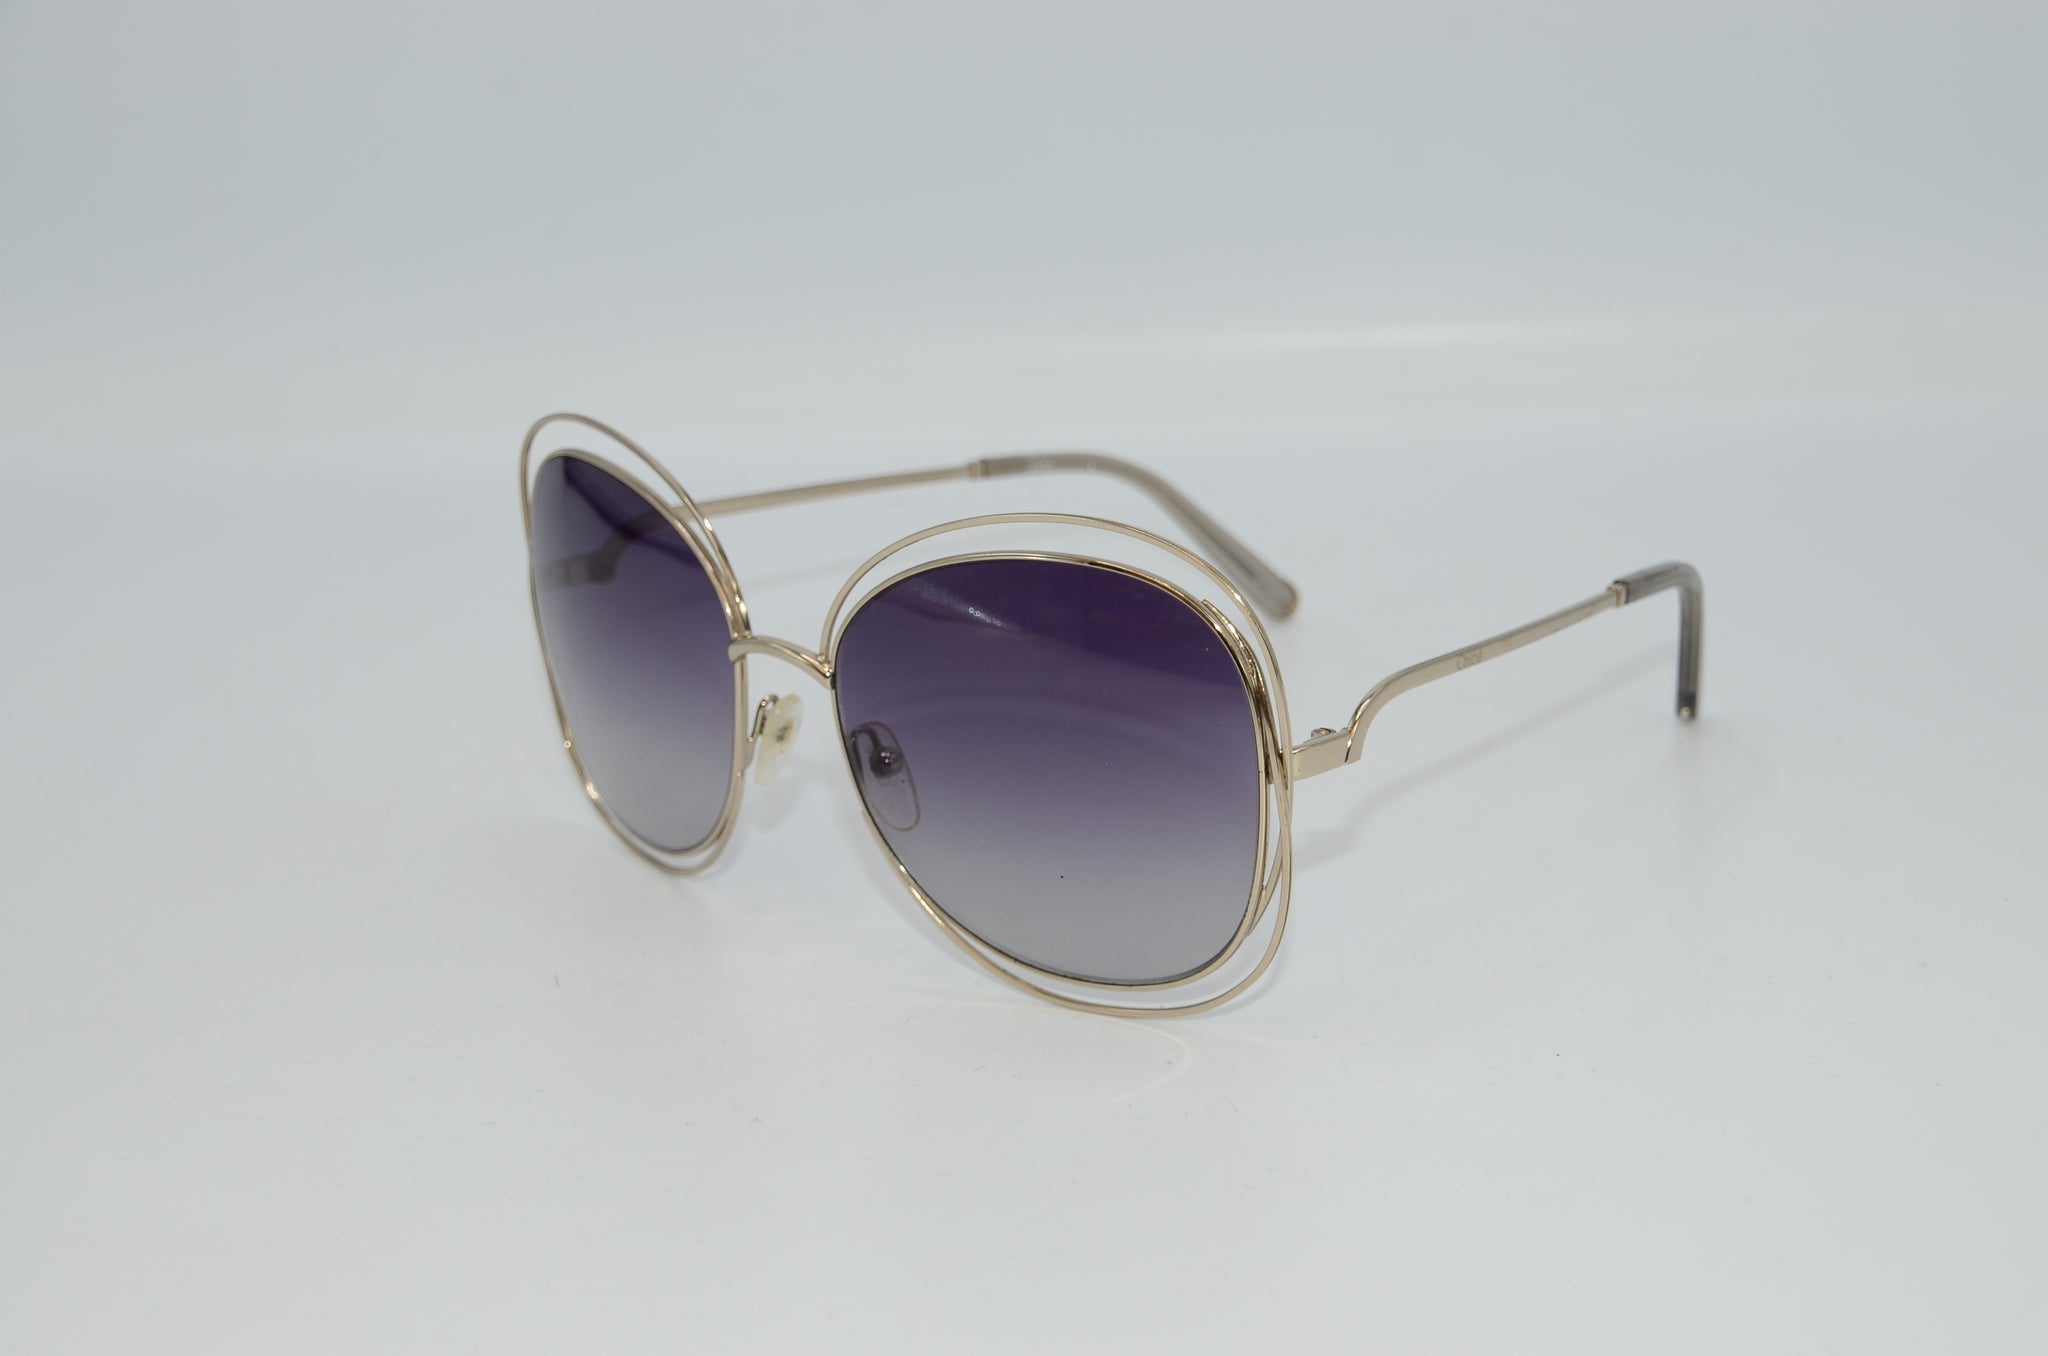 Chloé Carlina Sunglasses - Iconics Preloved Luxury